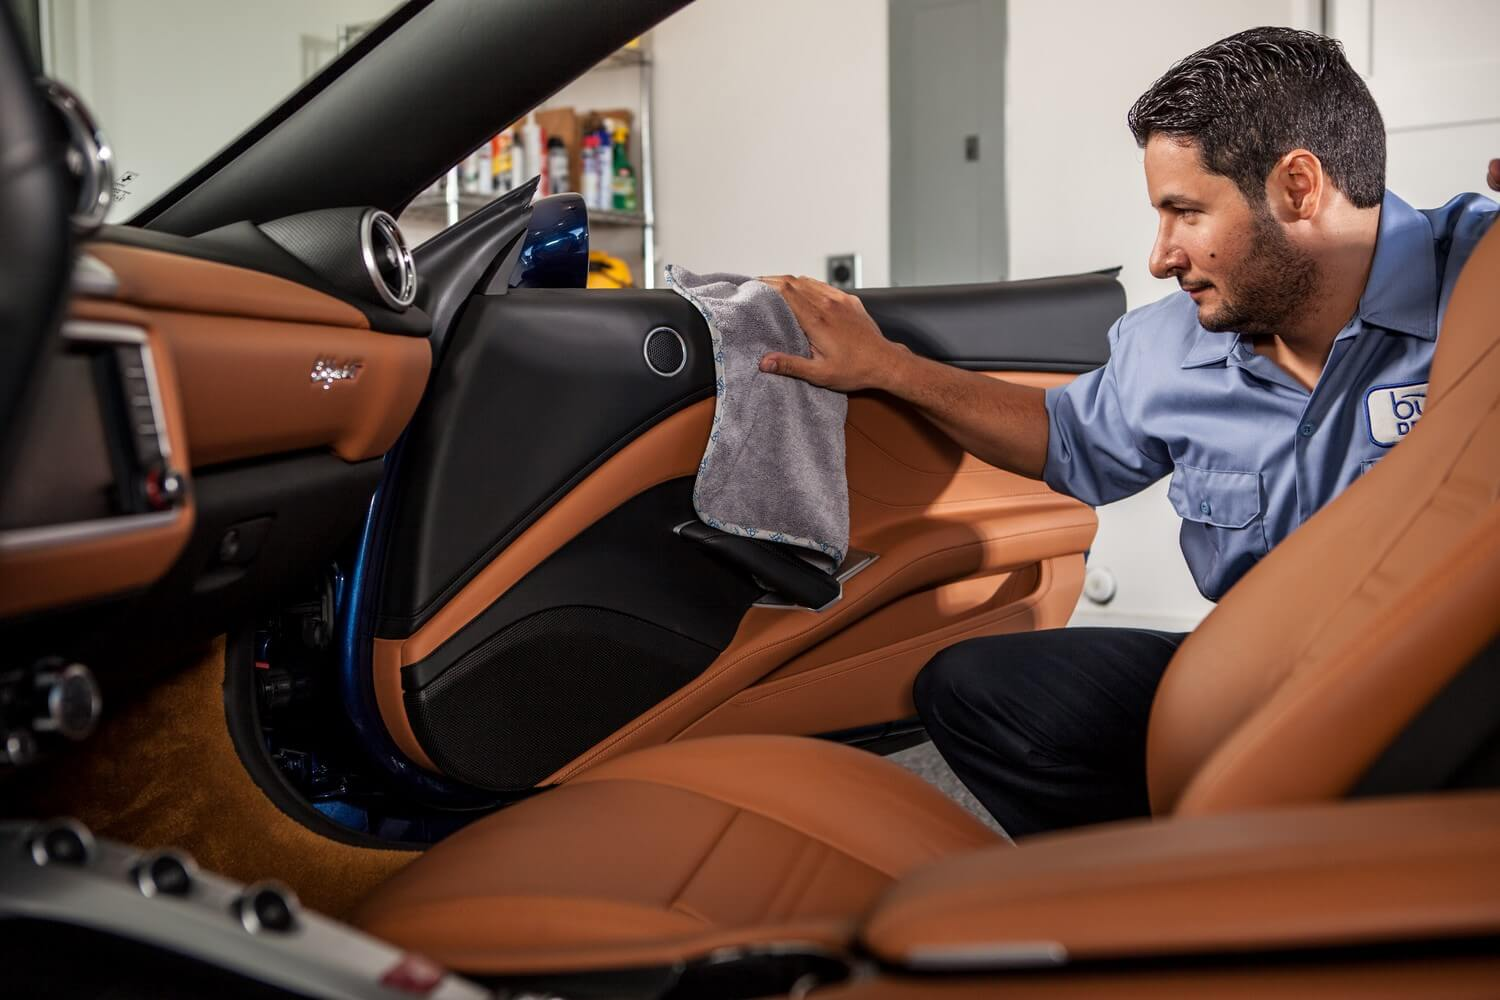 microfiber towel for car seats